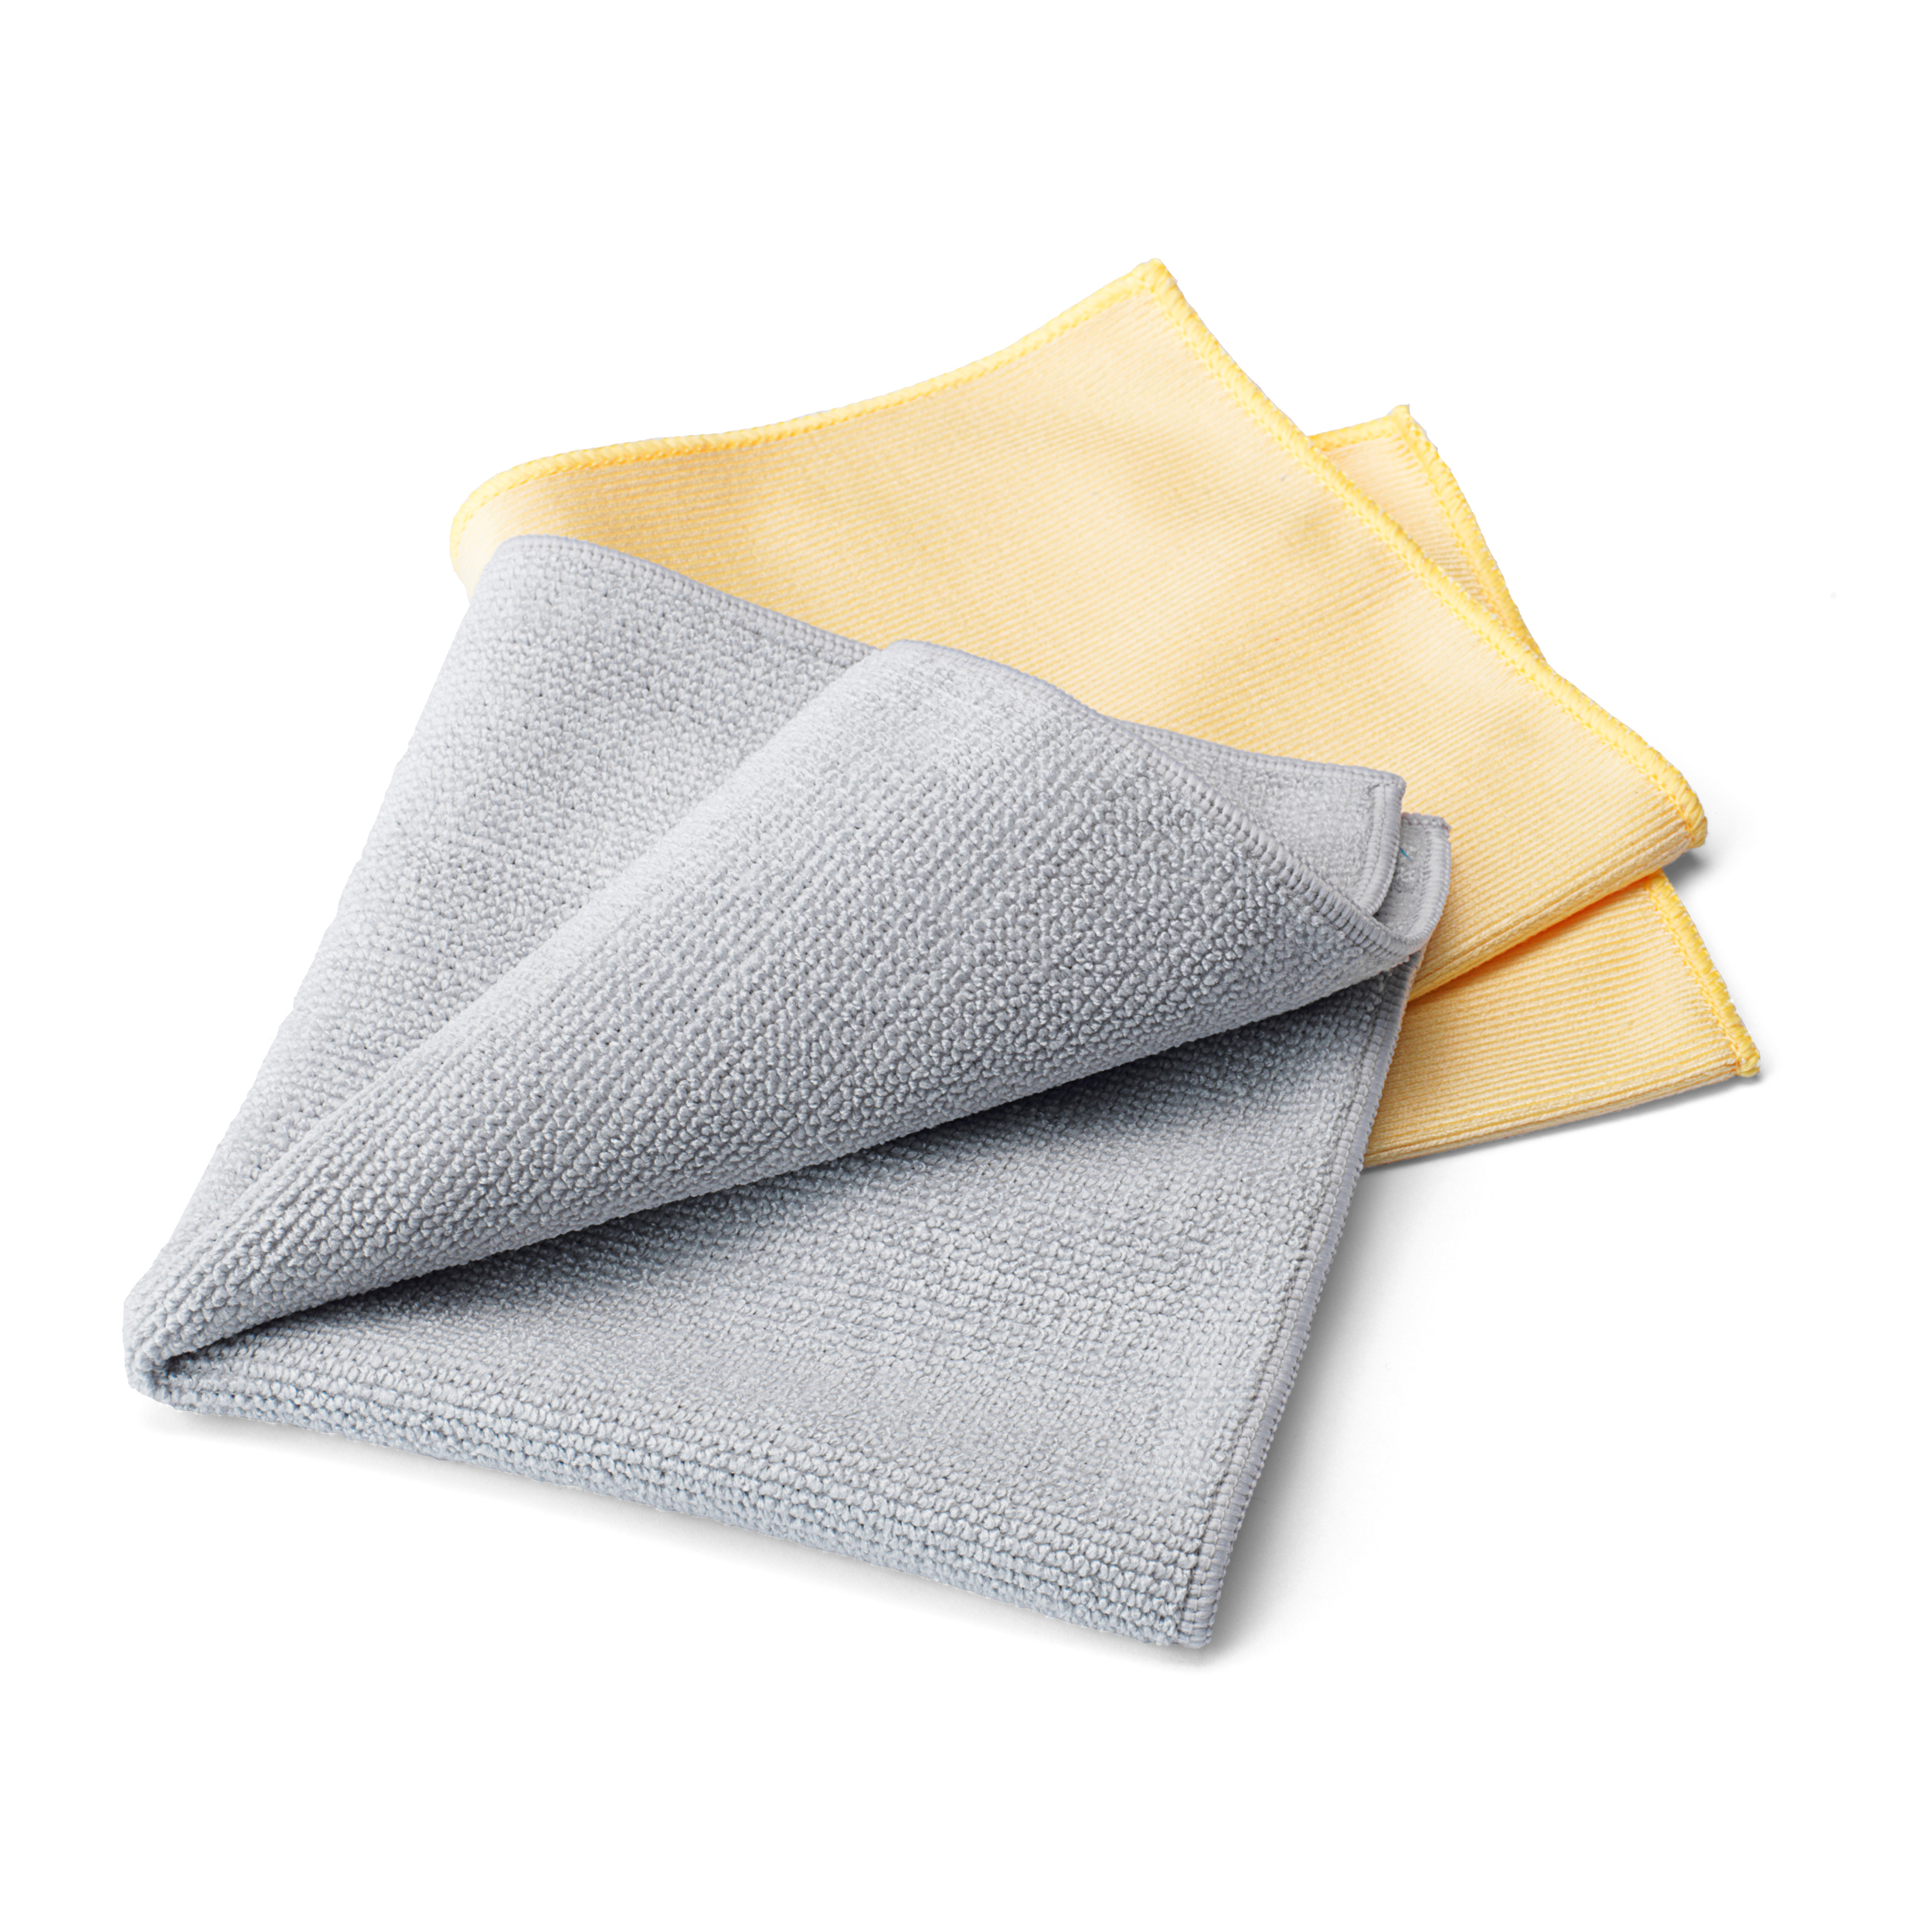 559c00239ed141 Brabantia stainless steel cleaning set cleaning cloth cleaning tissue cloth  cleaning rag cloths yellow grey jpg